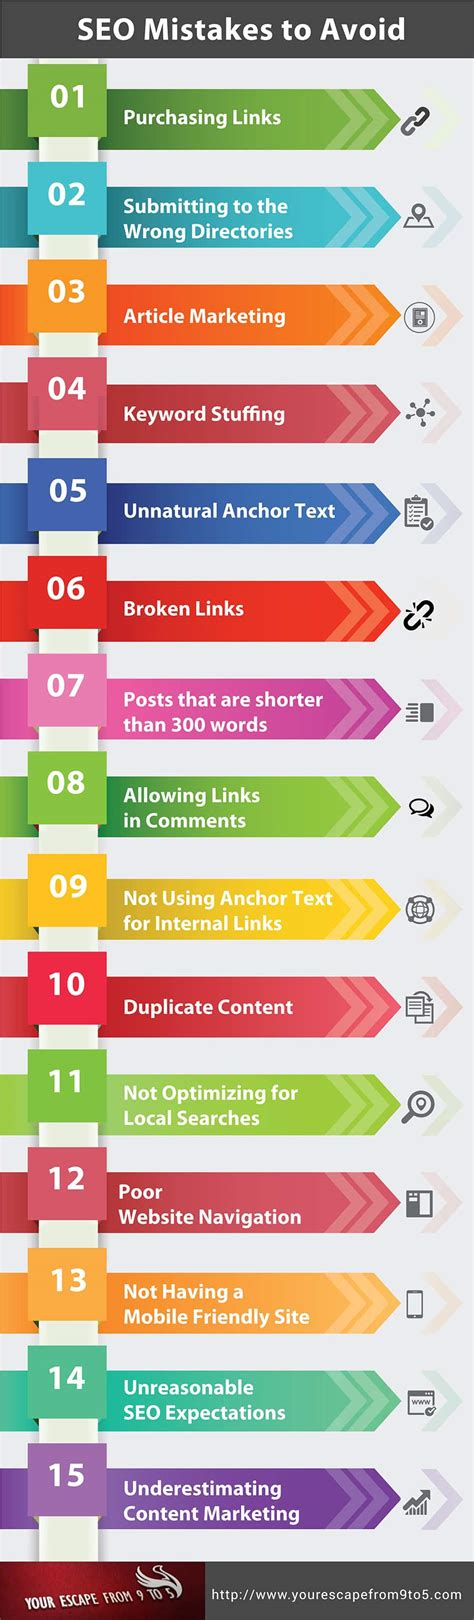 Website Ranking by 15 Seo Mistakes To Avoid Infographic